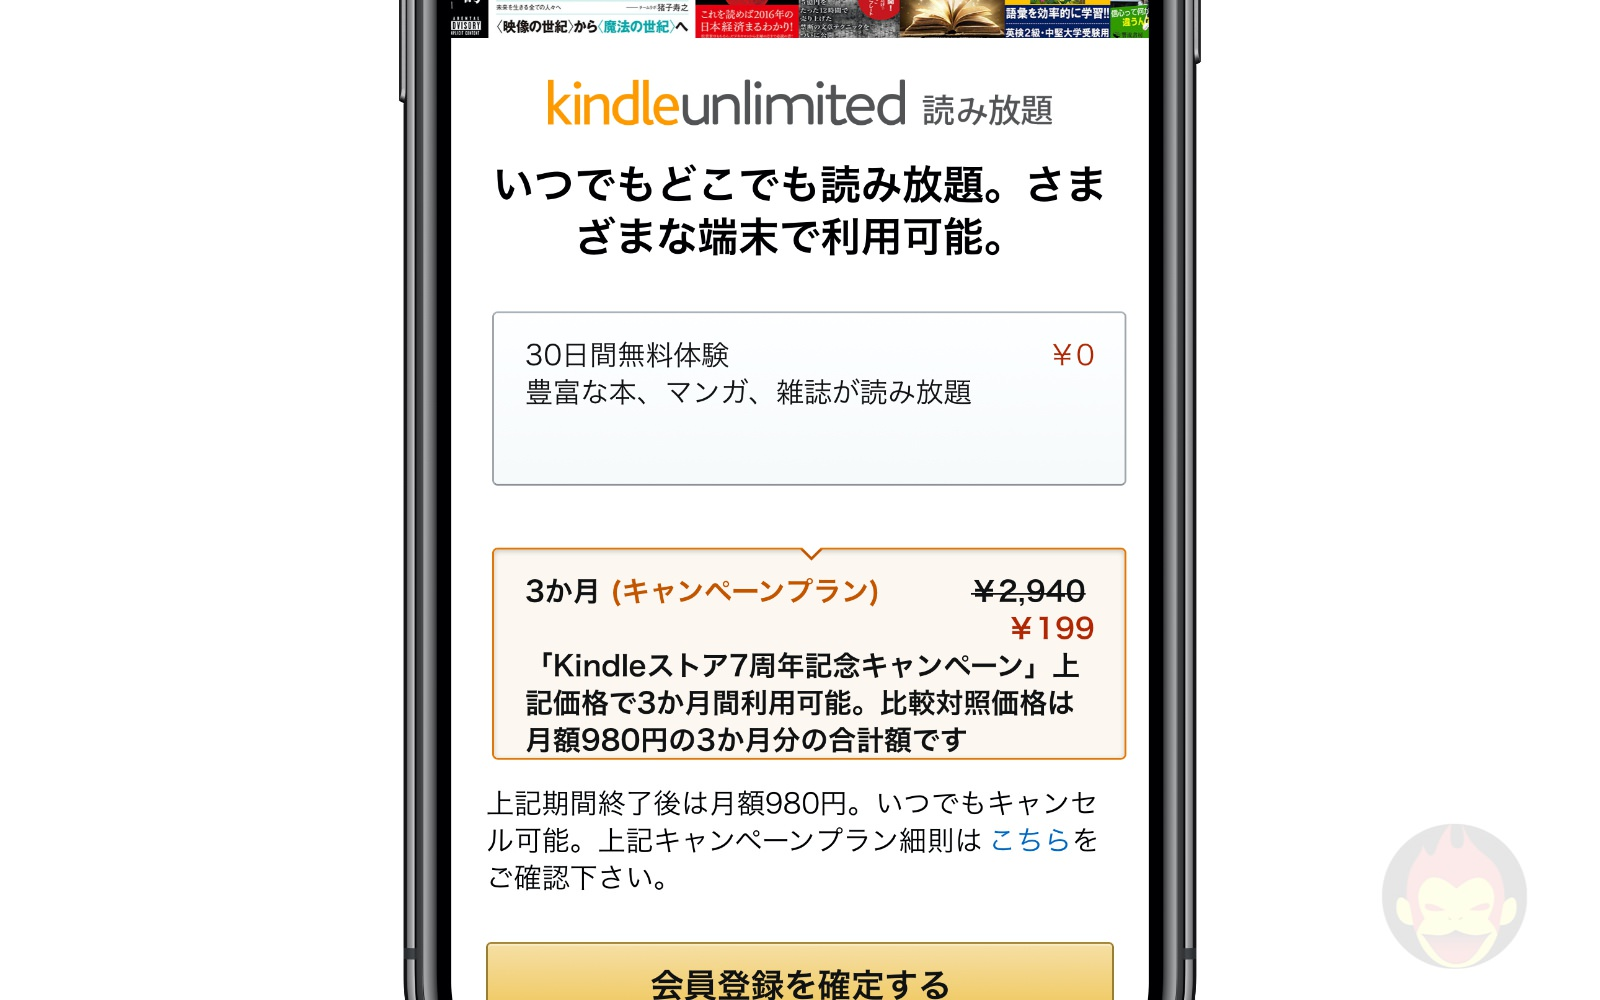 Kindle-Unlimited-3month-free-campaign-iphone.jpg